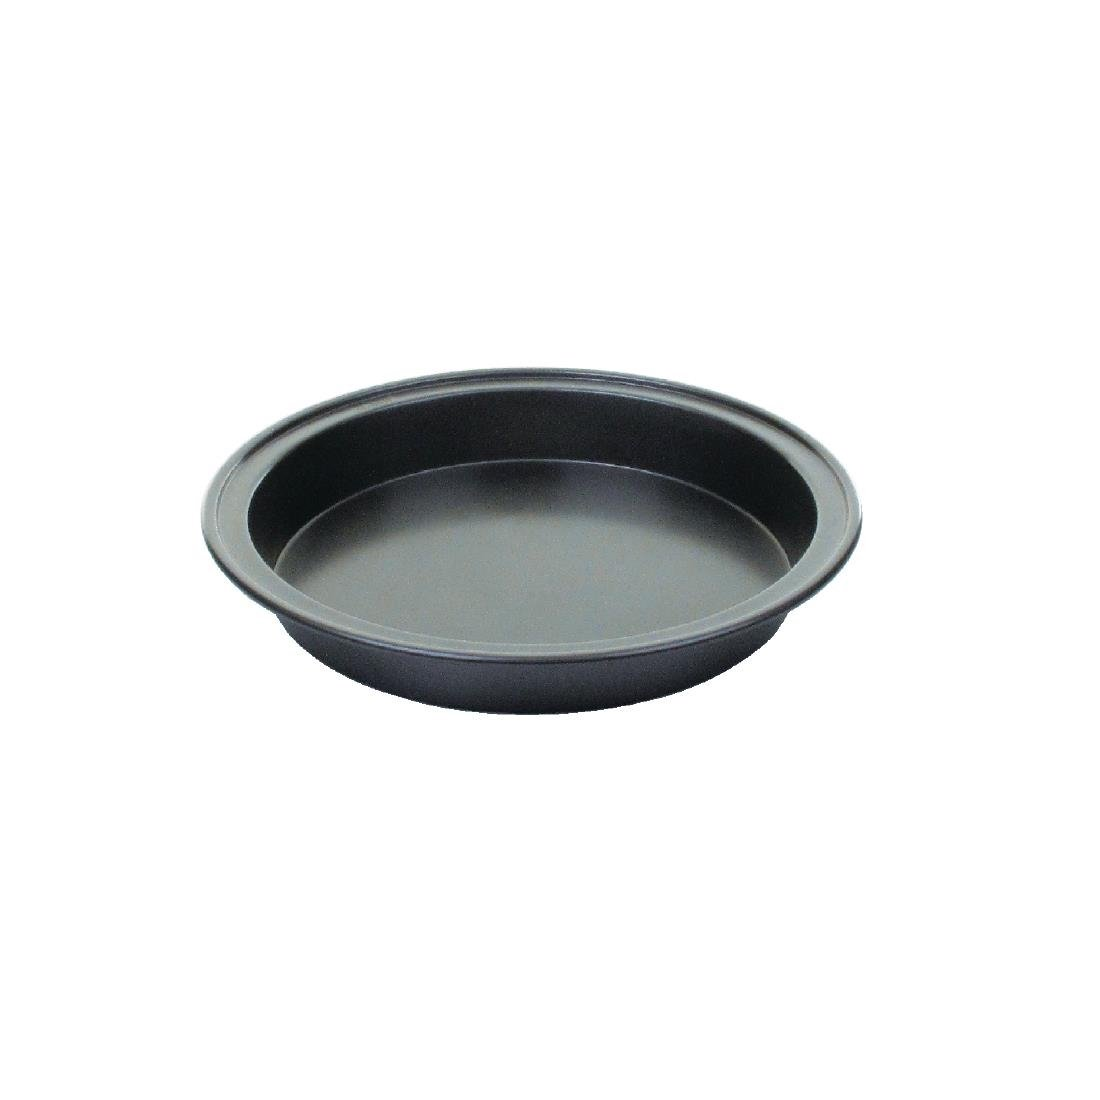 Image of Avanti Non-Stick Round Cake Tin 230mm